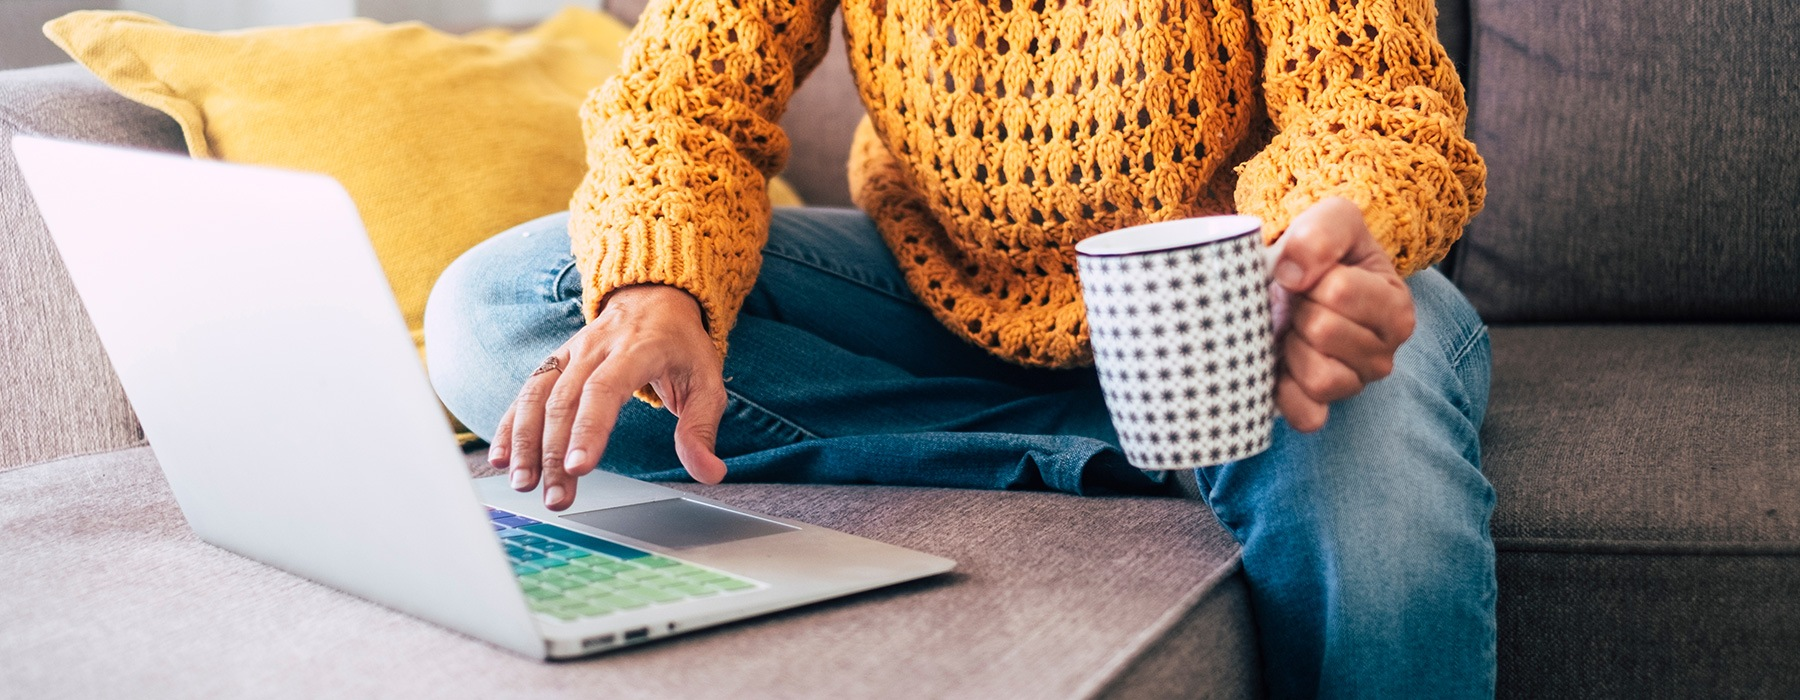 lifestyle image of a person holding a mug while working on a laptop